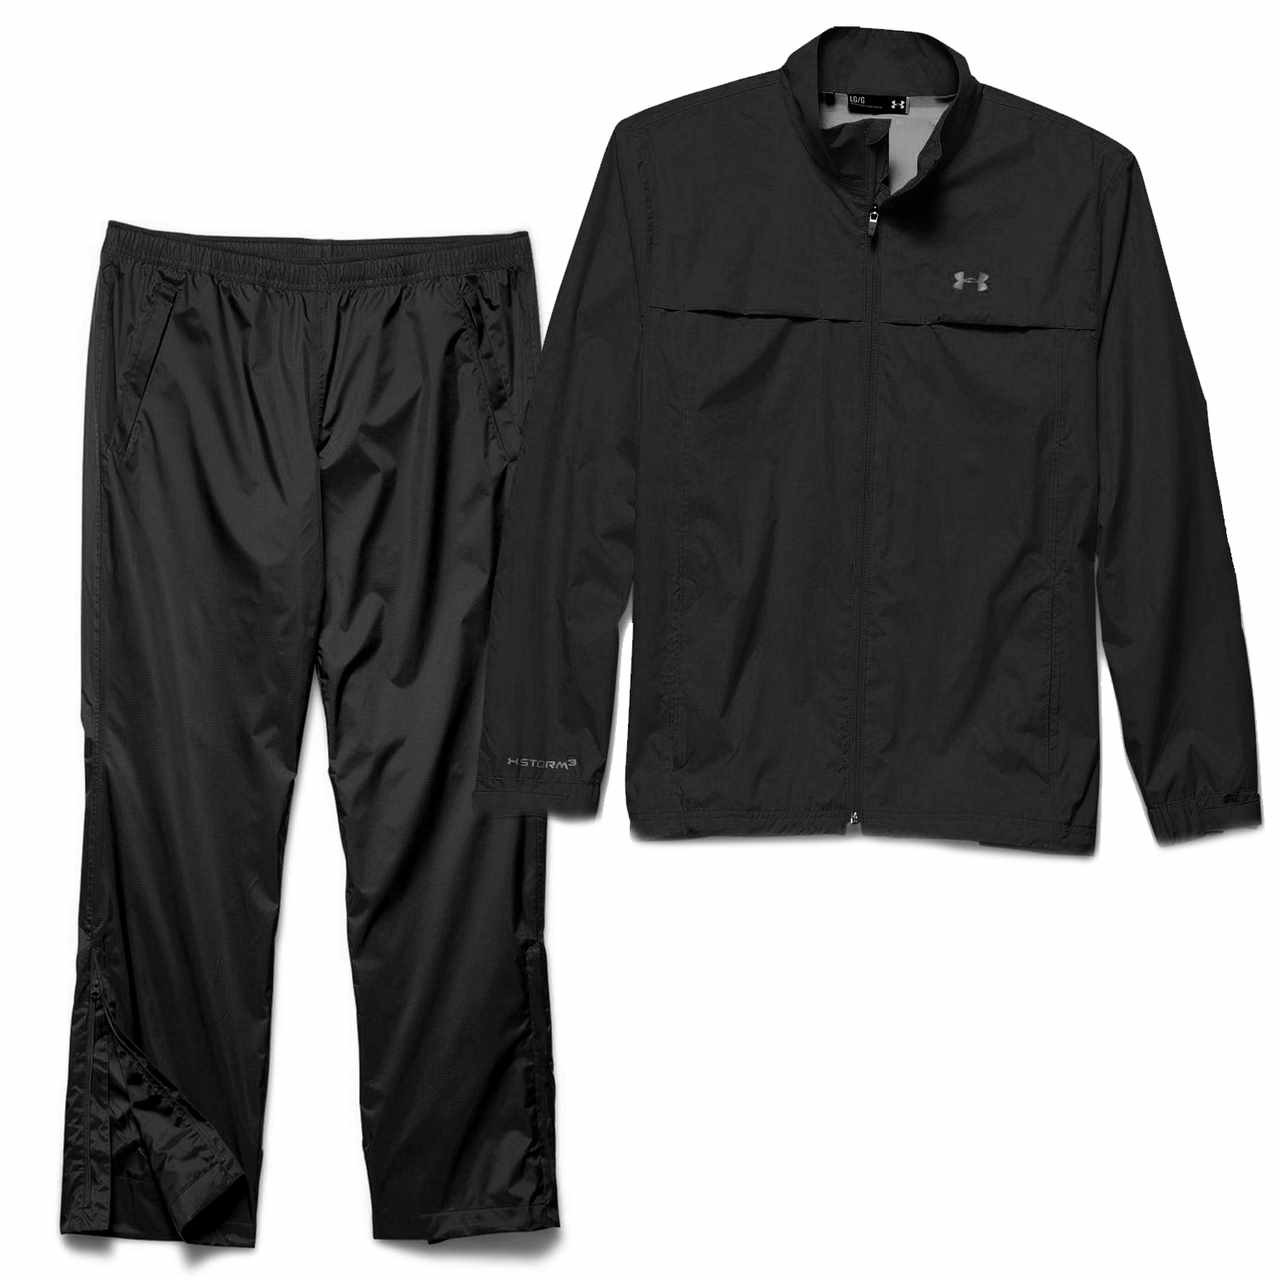 7a1e8e2aea Under Armour Men's Storm Golf Rain Suit - Black